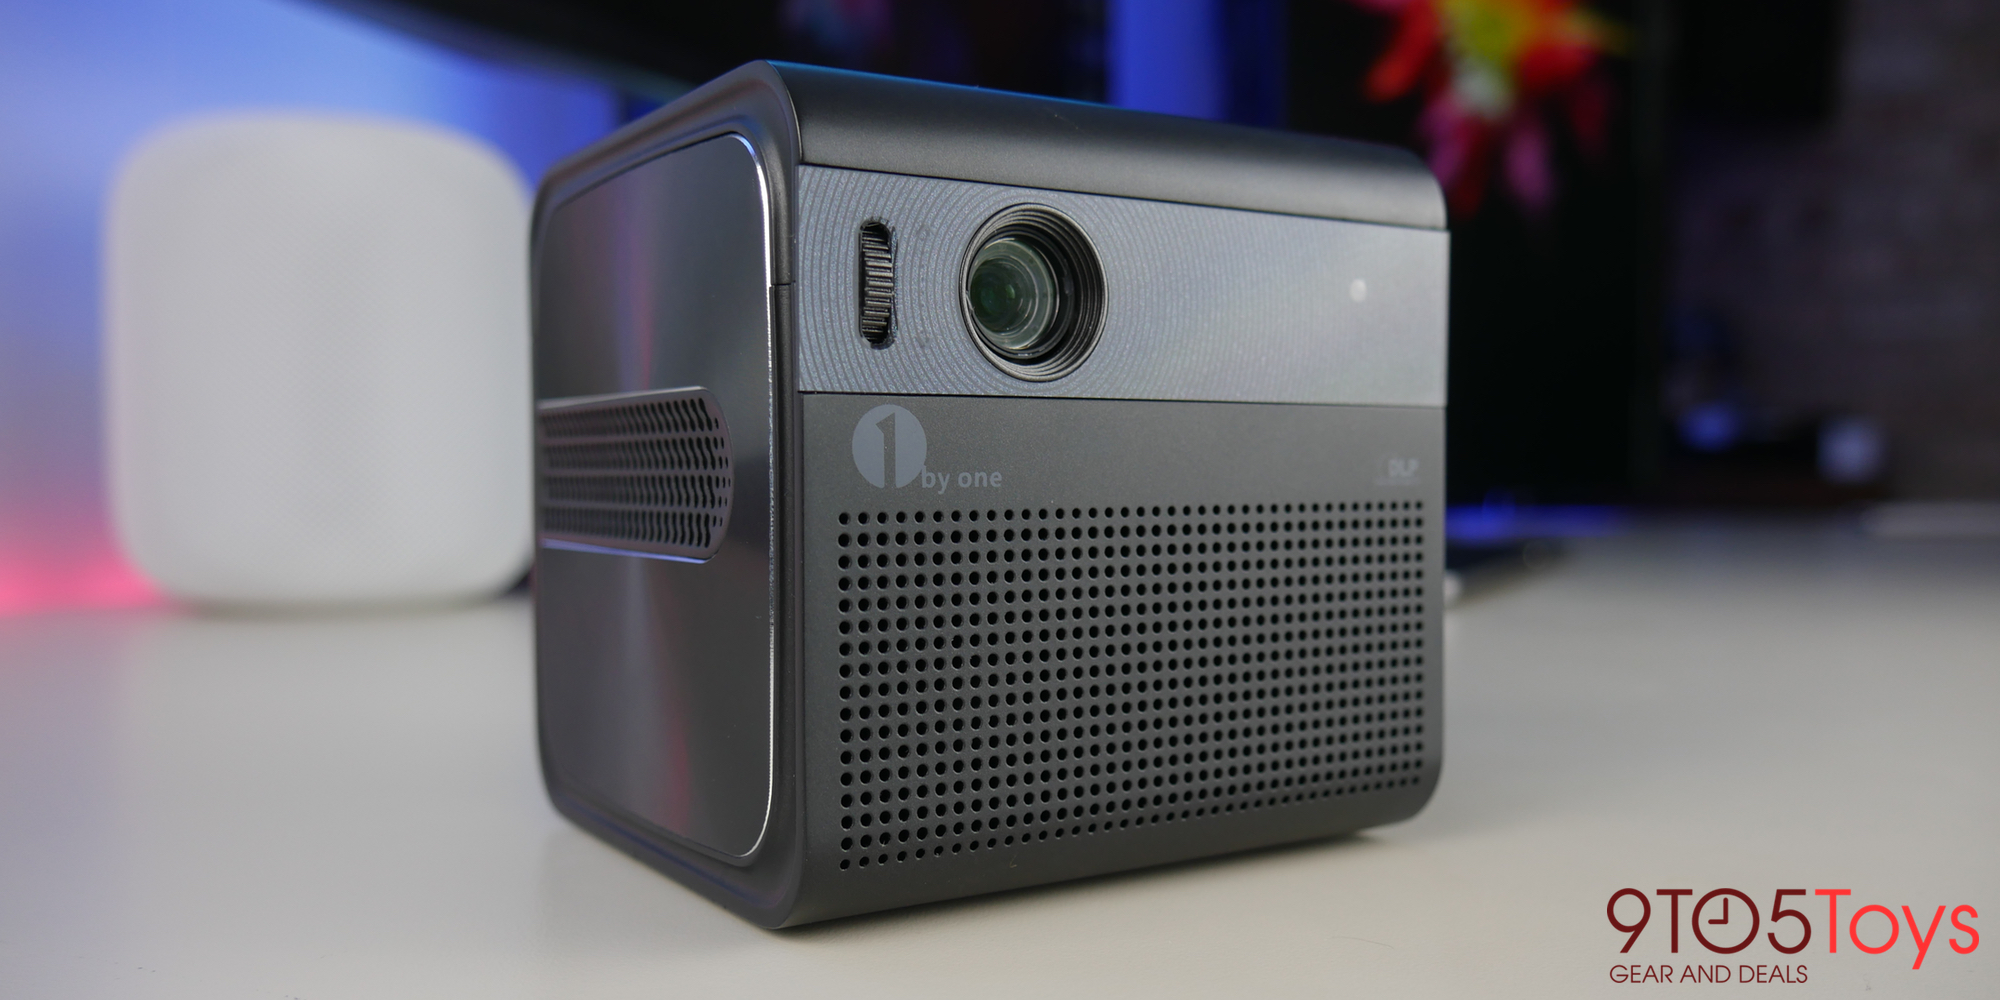 Review: 1byone's GoSho is a solid mini HD projector but lacks as a streamer